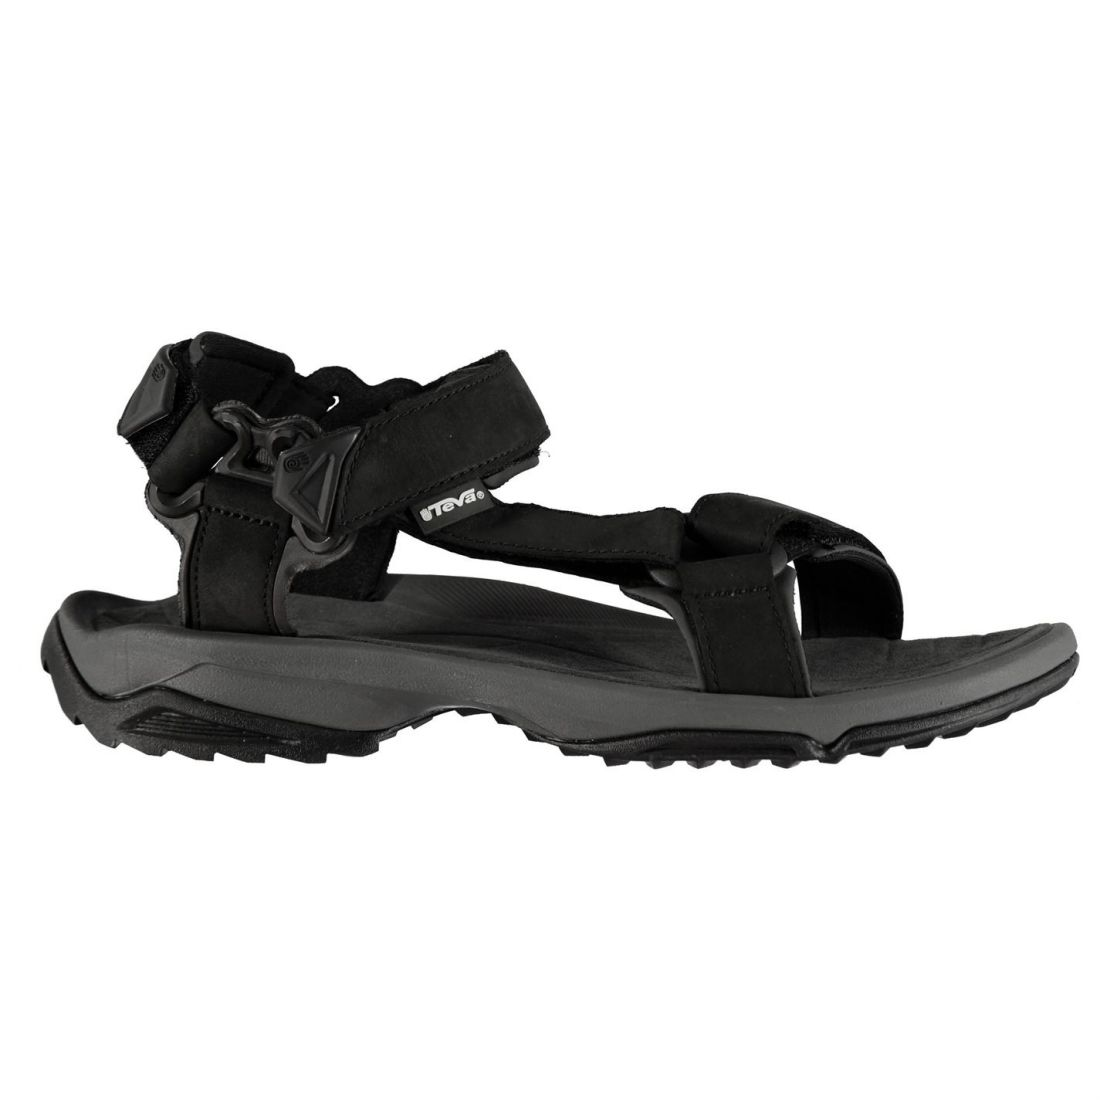 3c43d5e99363a8 Details about Teva Mens Terra Fi Lite Sandals Strap Touch and Close Summer